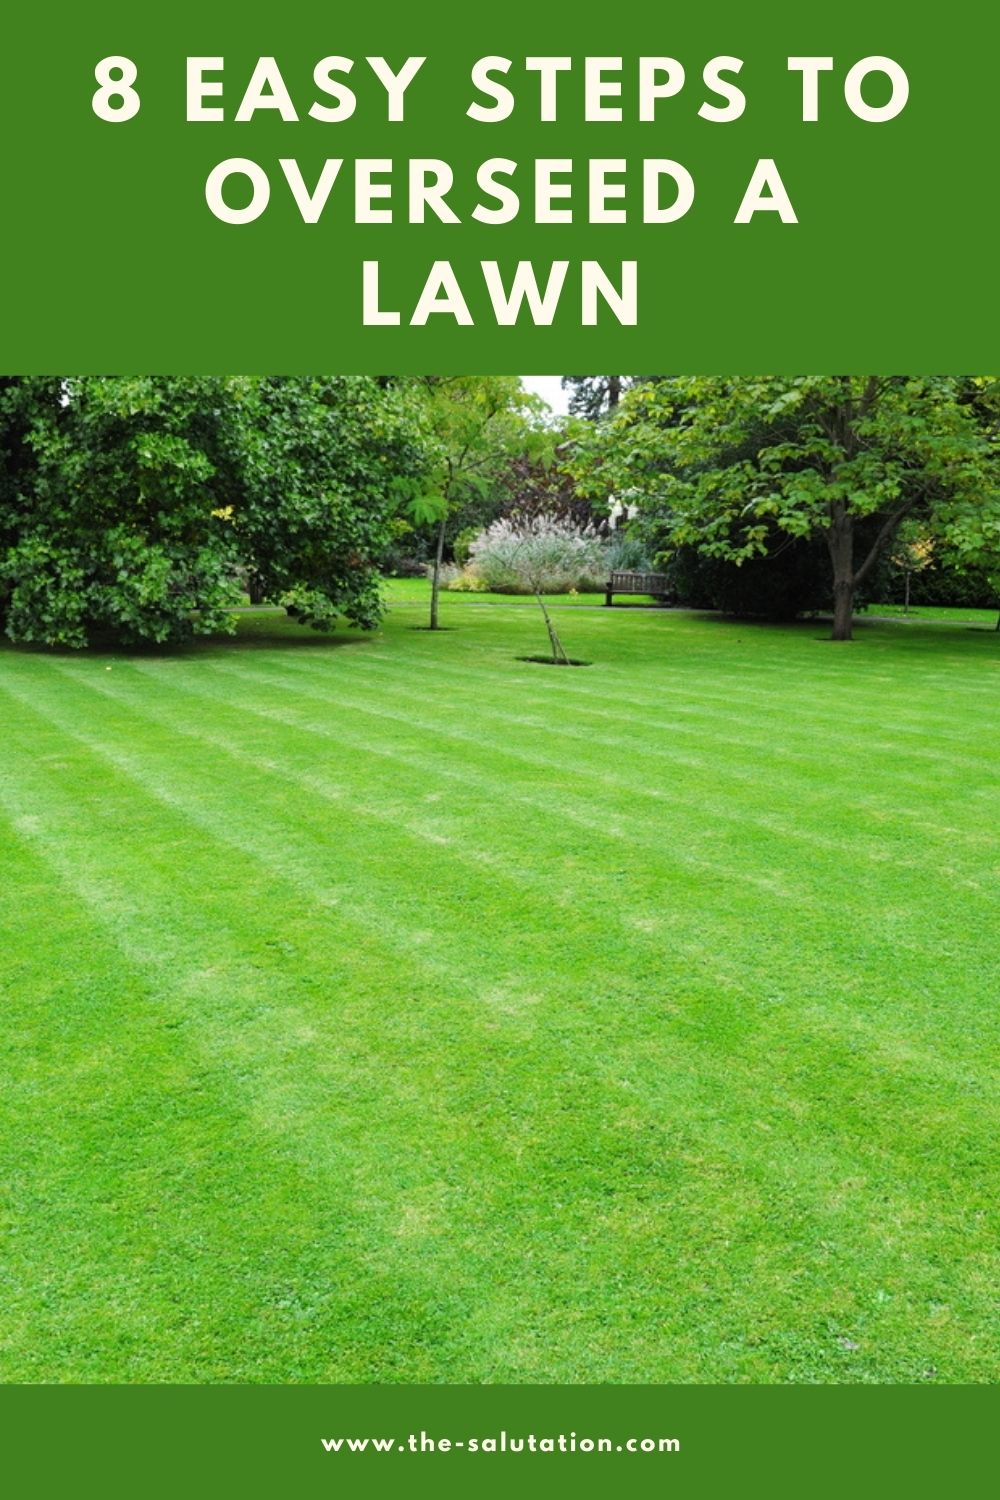 8 Easy Steps to Overseed a Lawn 1